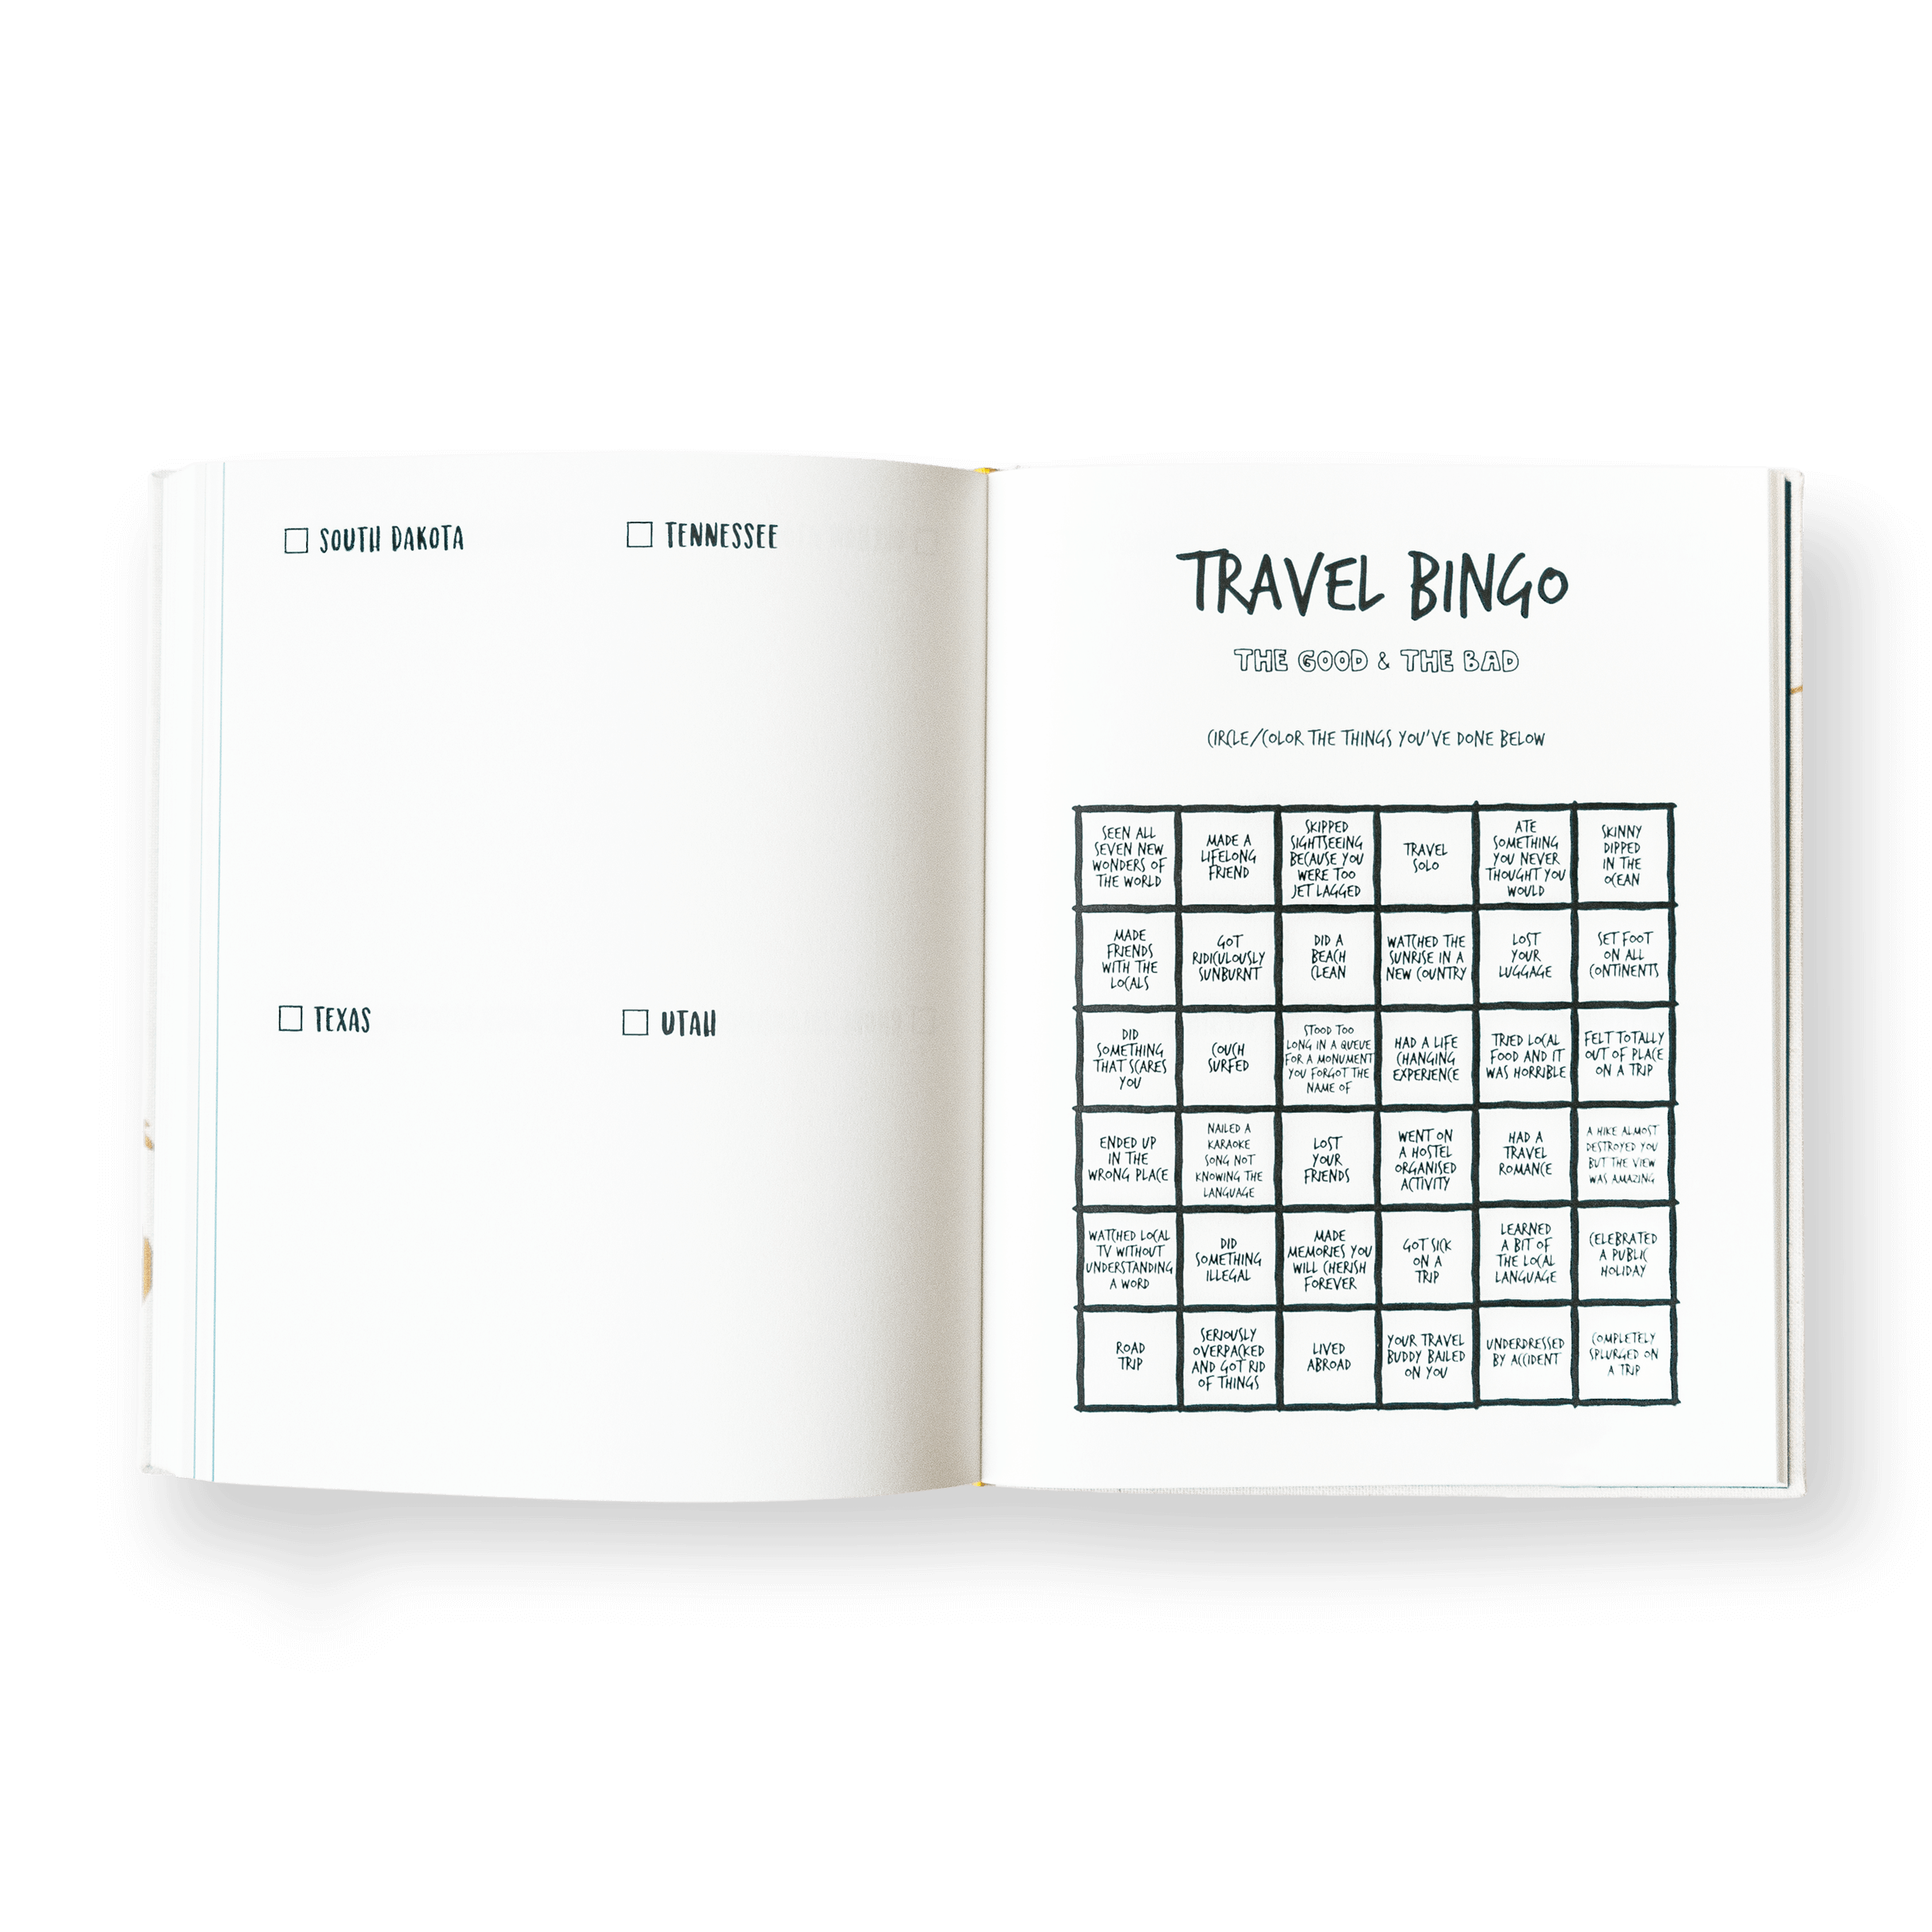 The Adventure Book Ultimate Traveler's Edition Travel Bingo United States of America USA Travel Journal